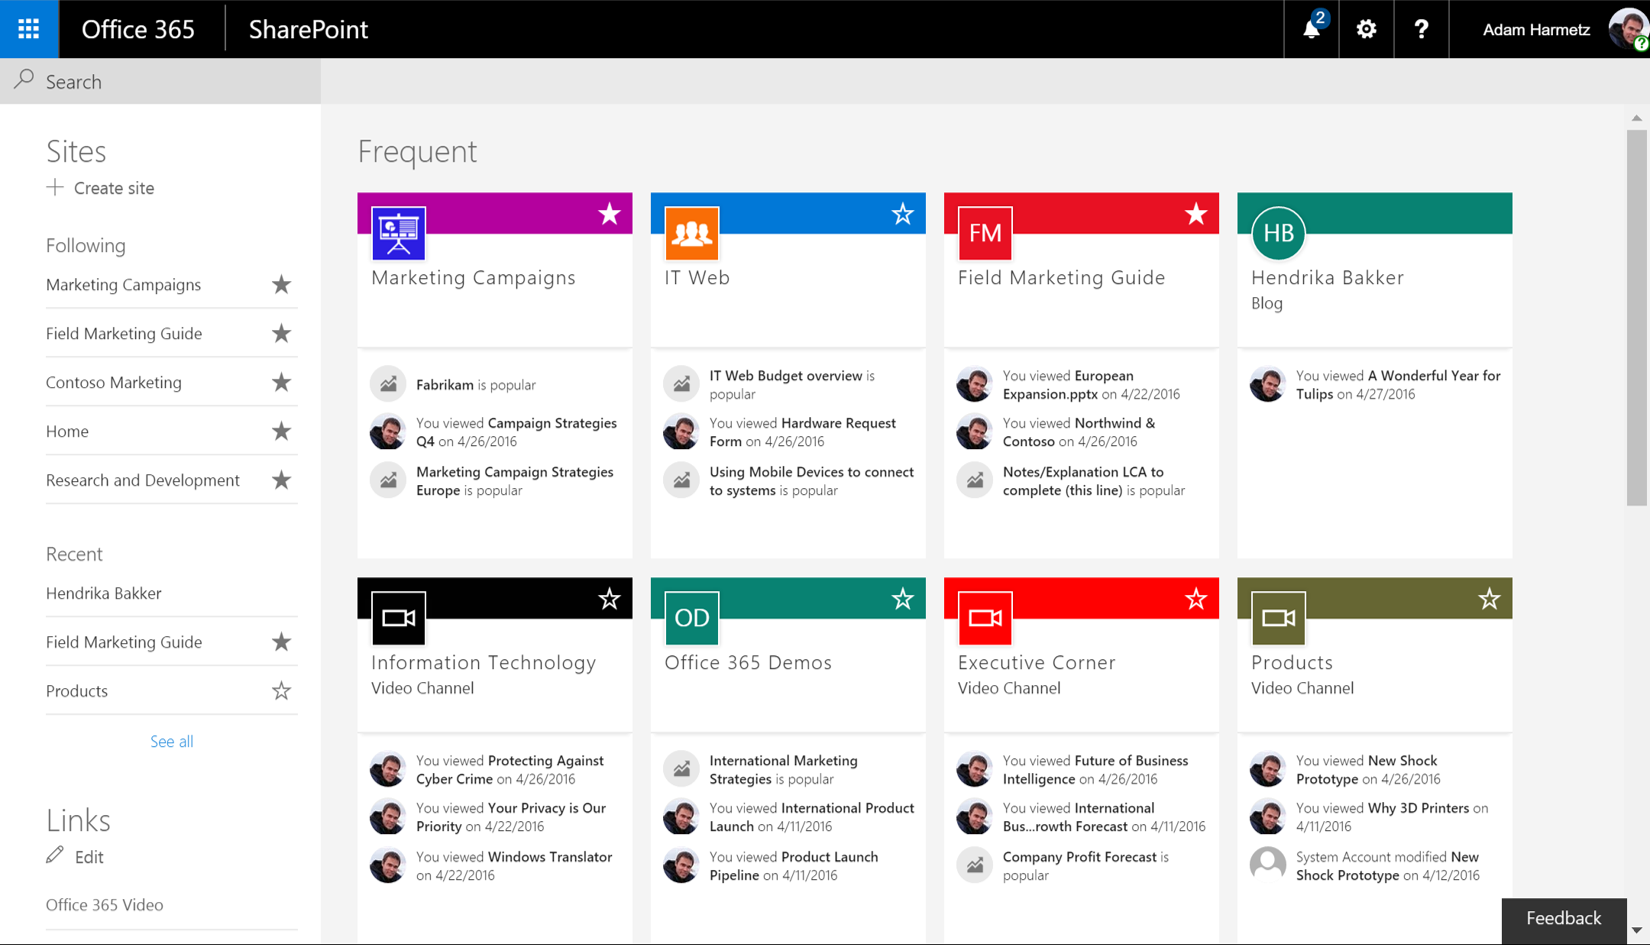 sharepoint 2013 office 365 tutorial